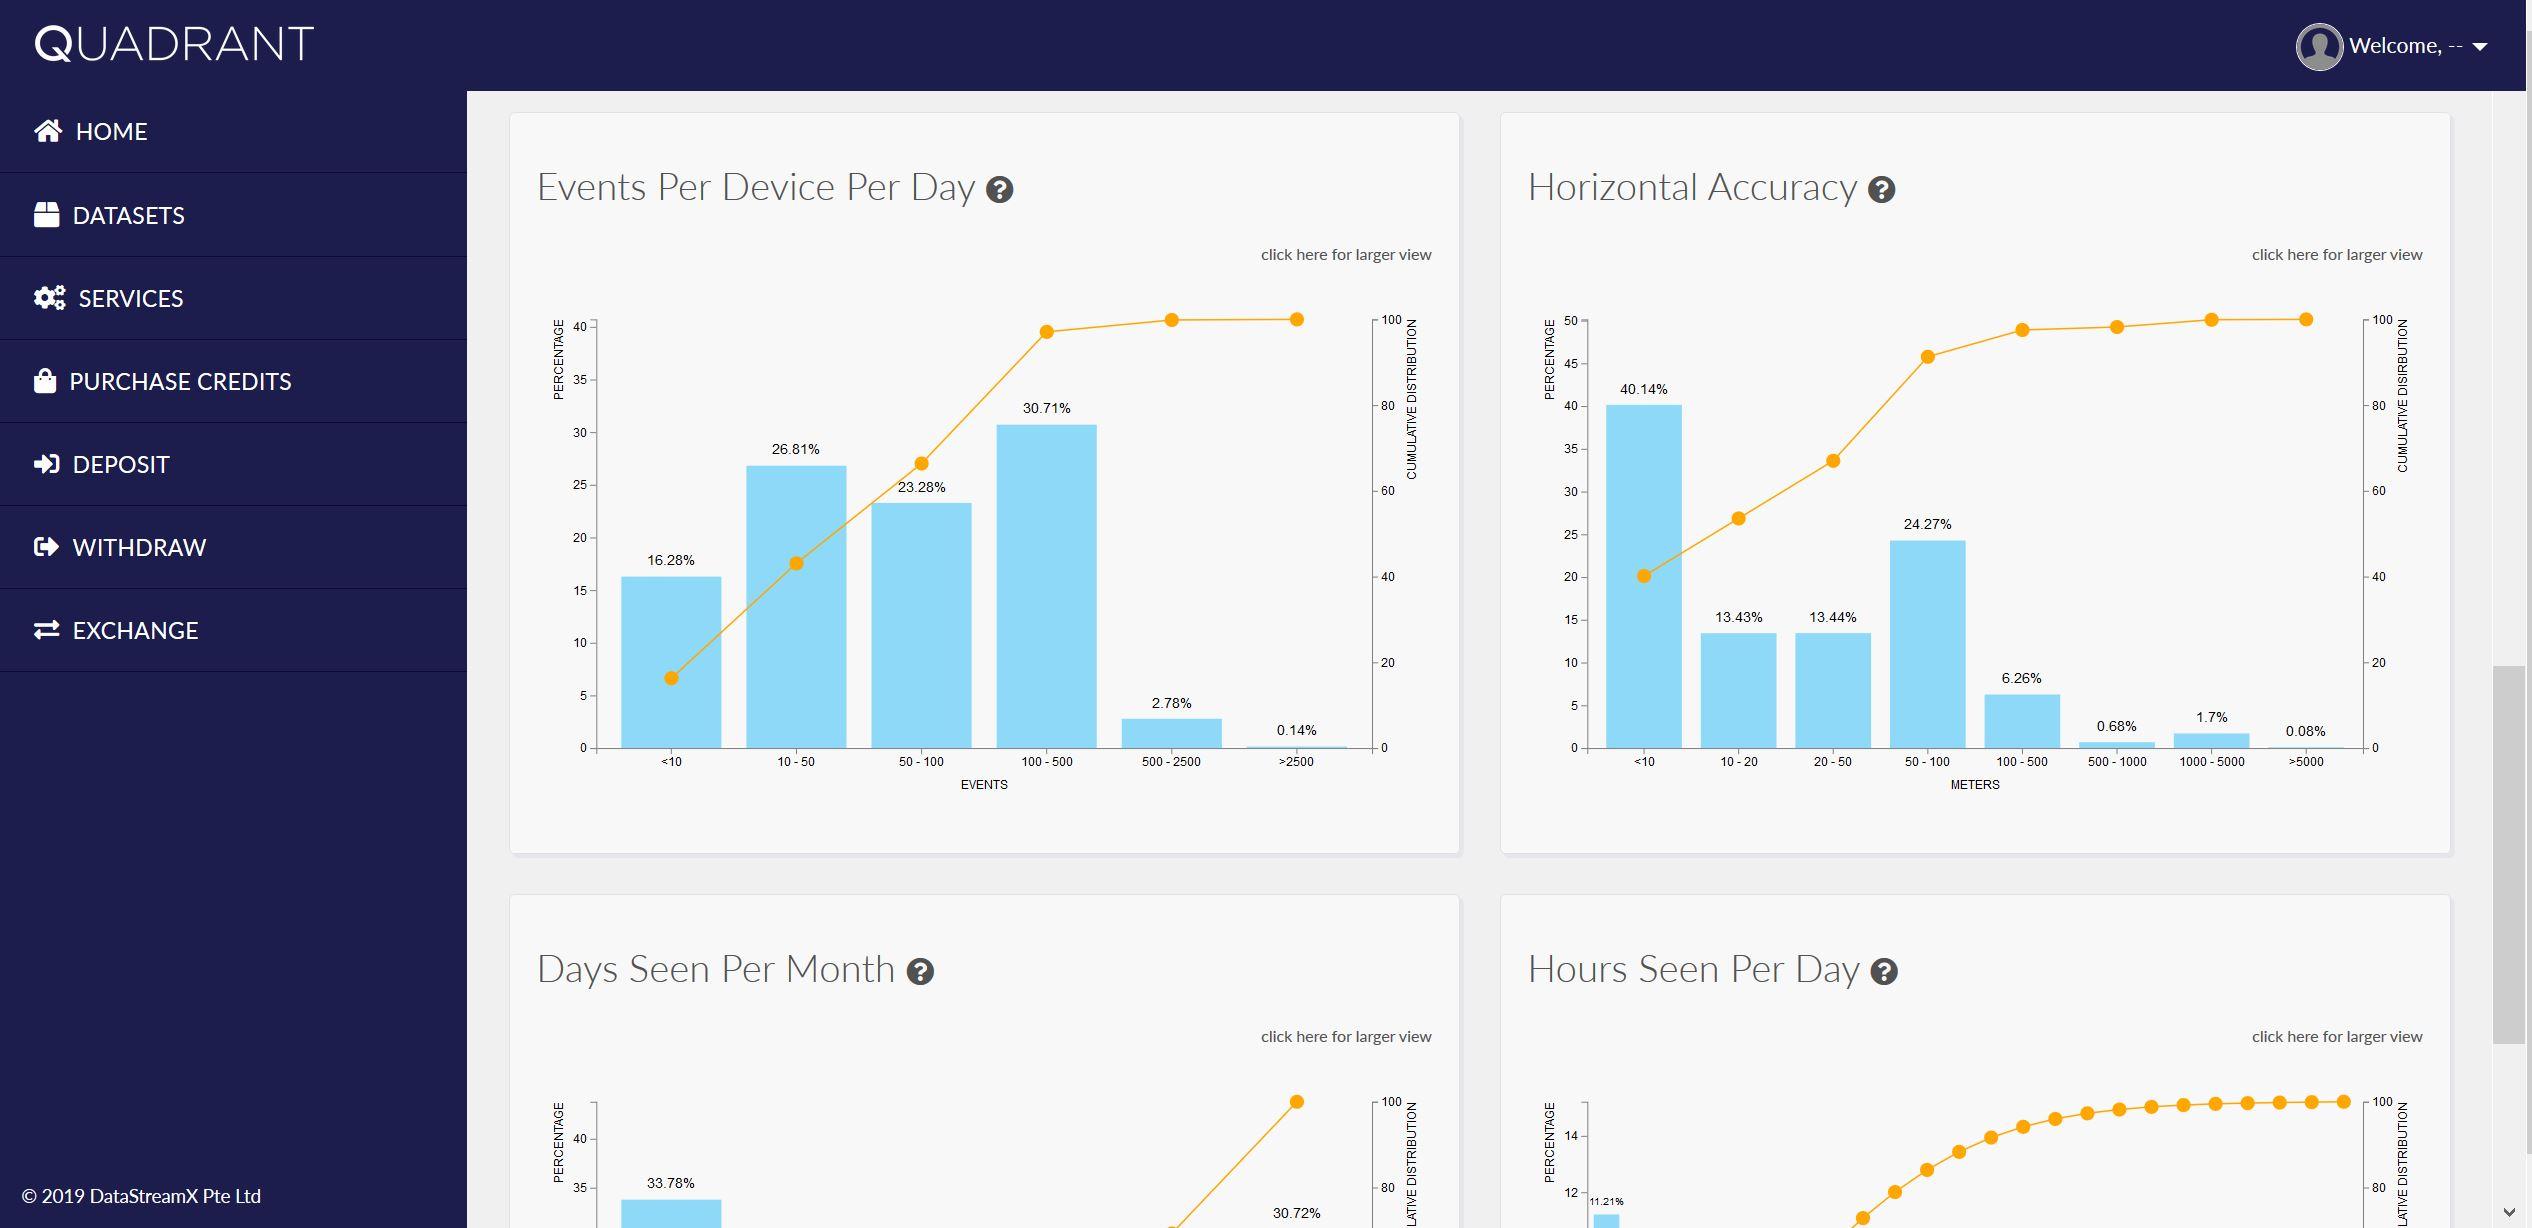 Data Quality Dashboard - Distribution Charts